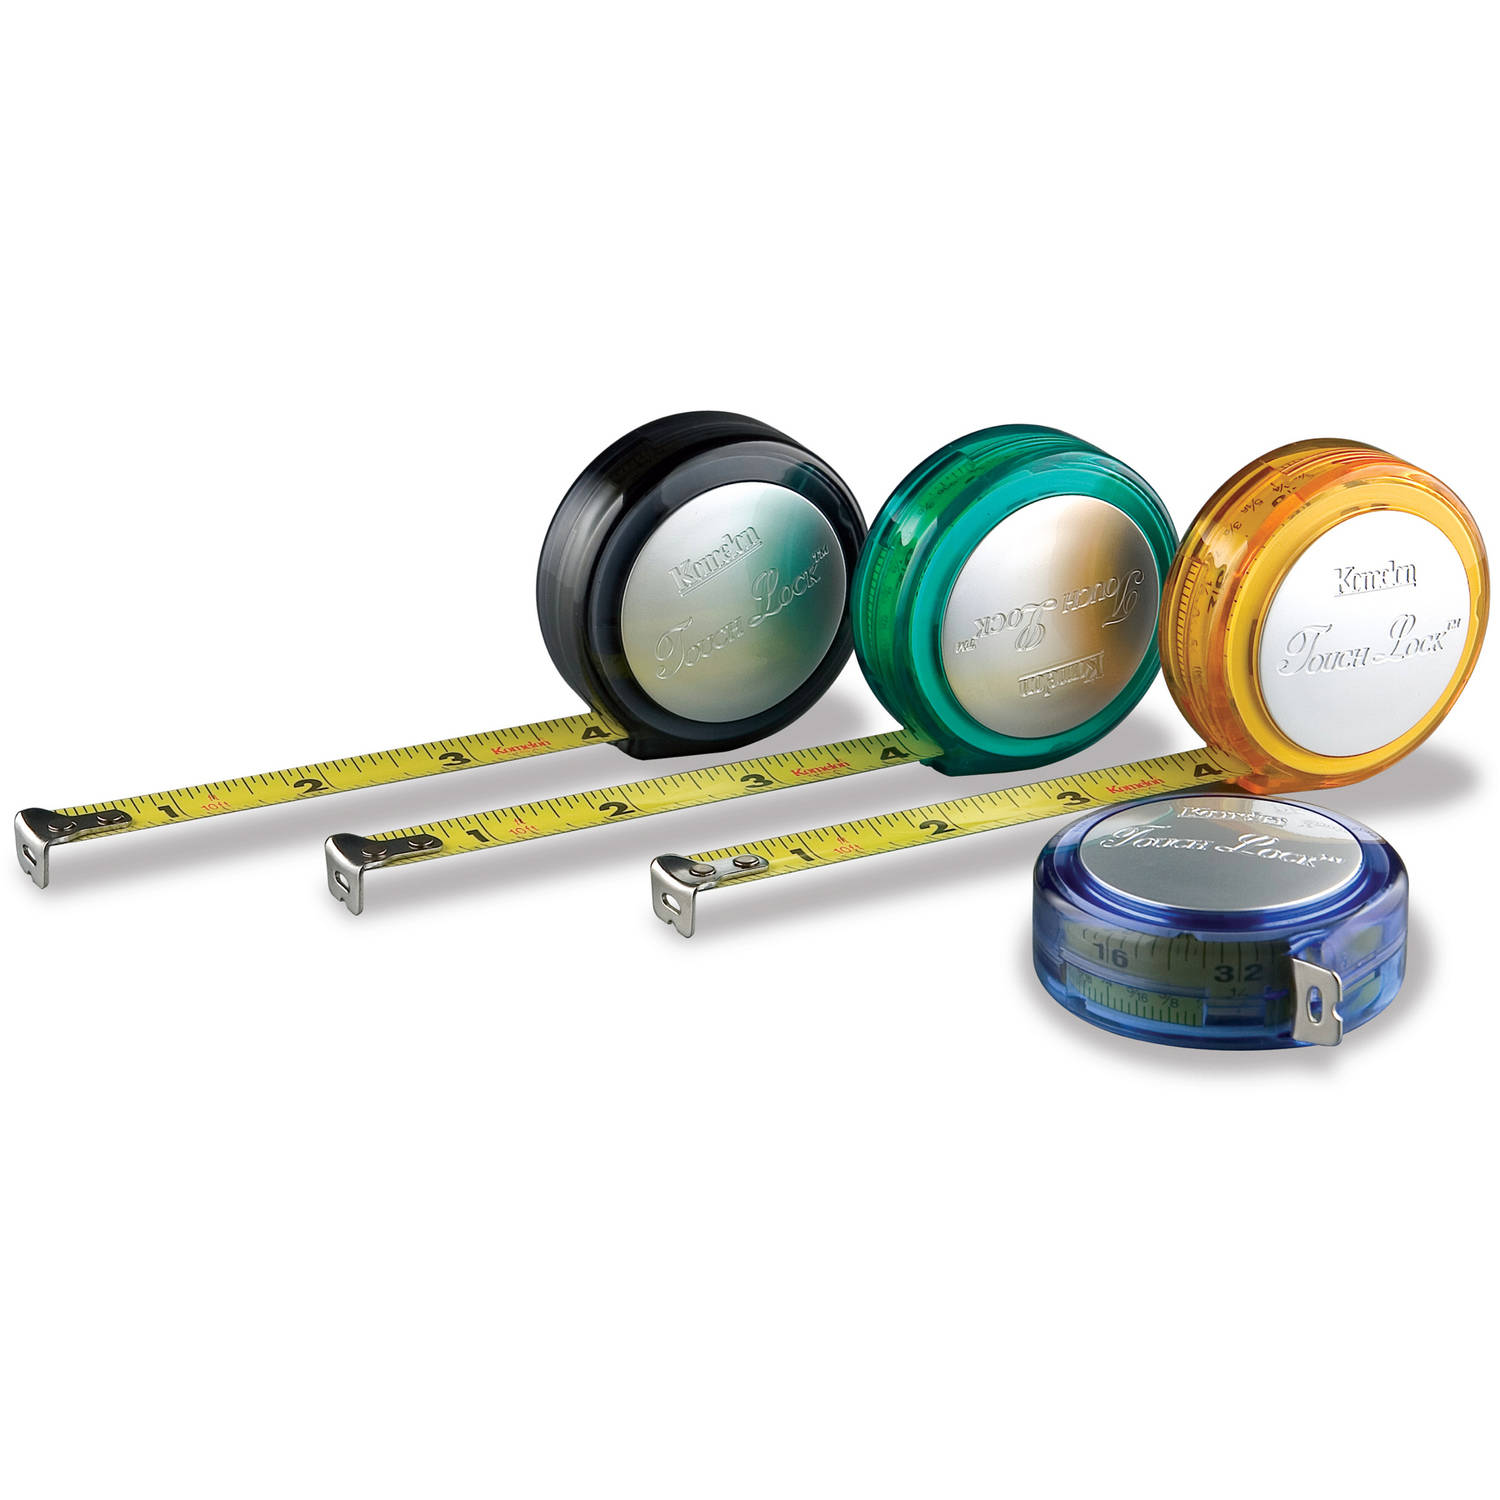 Komelon 10' Touch Lock Tape Measure